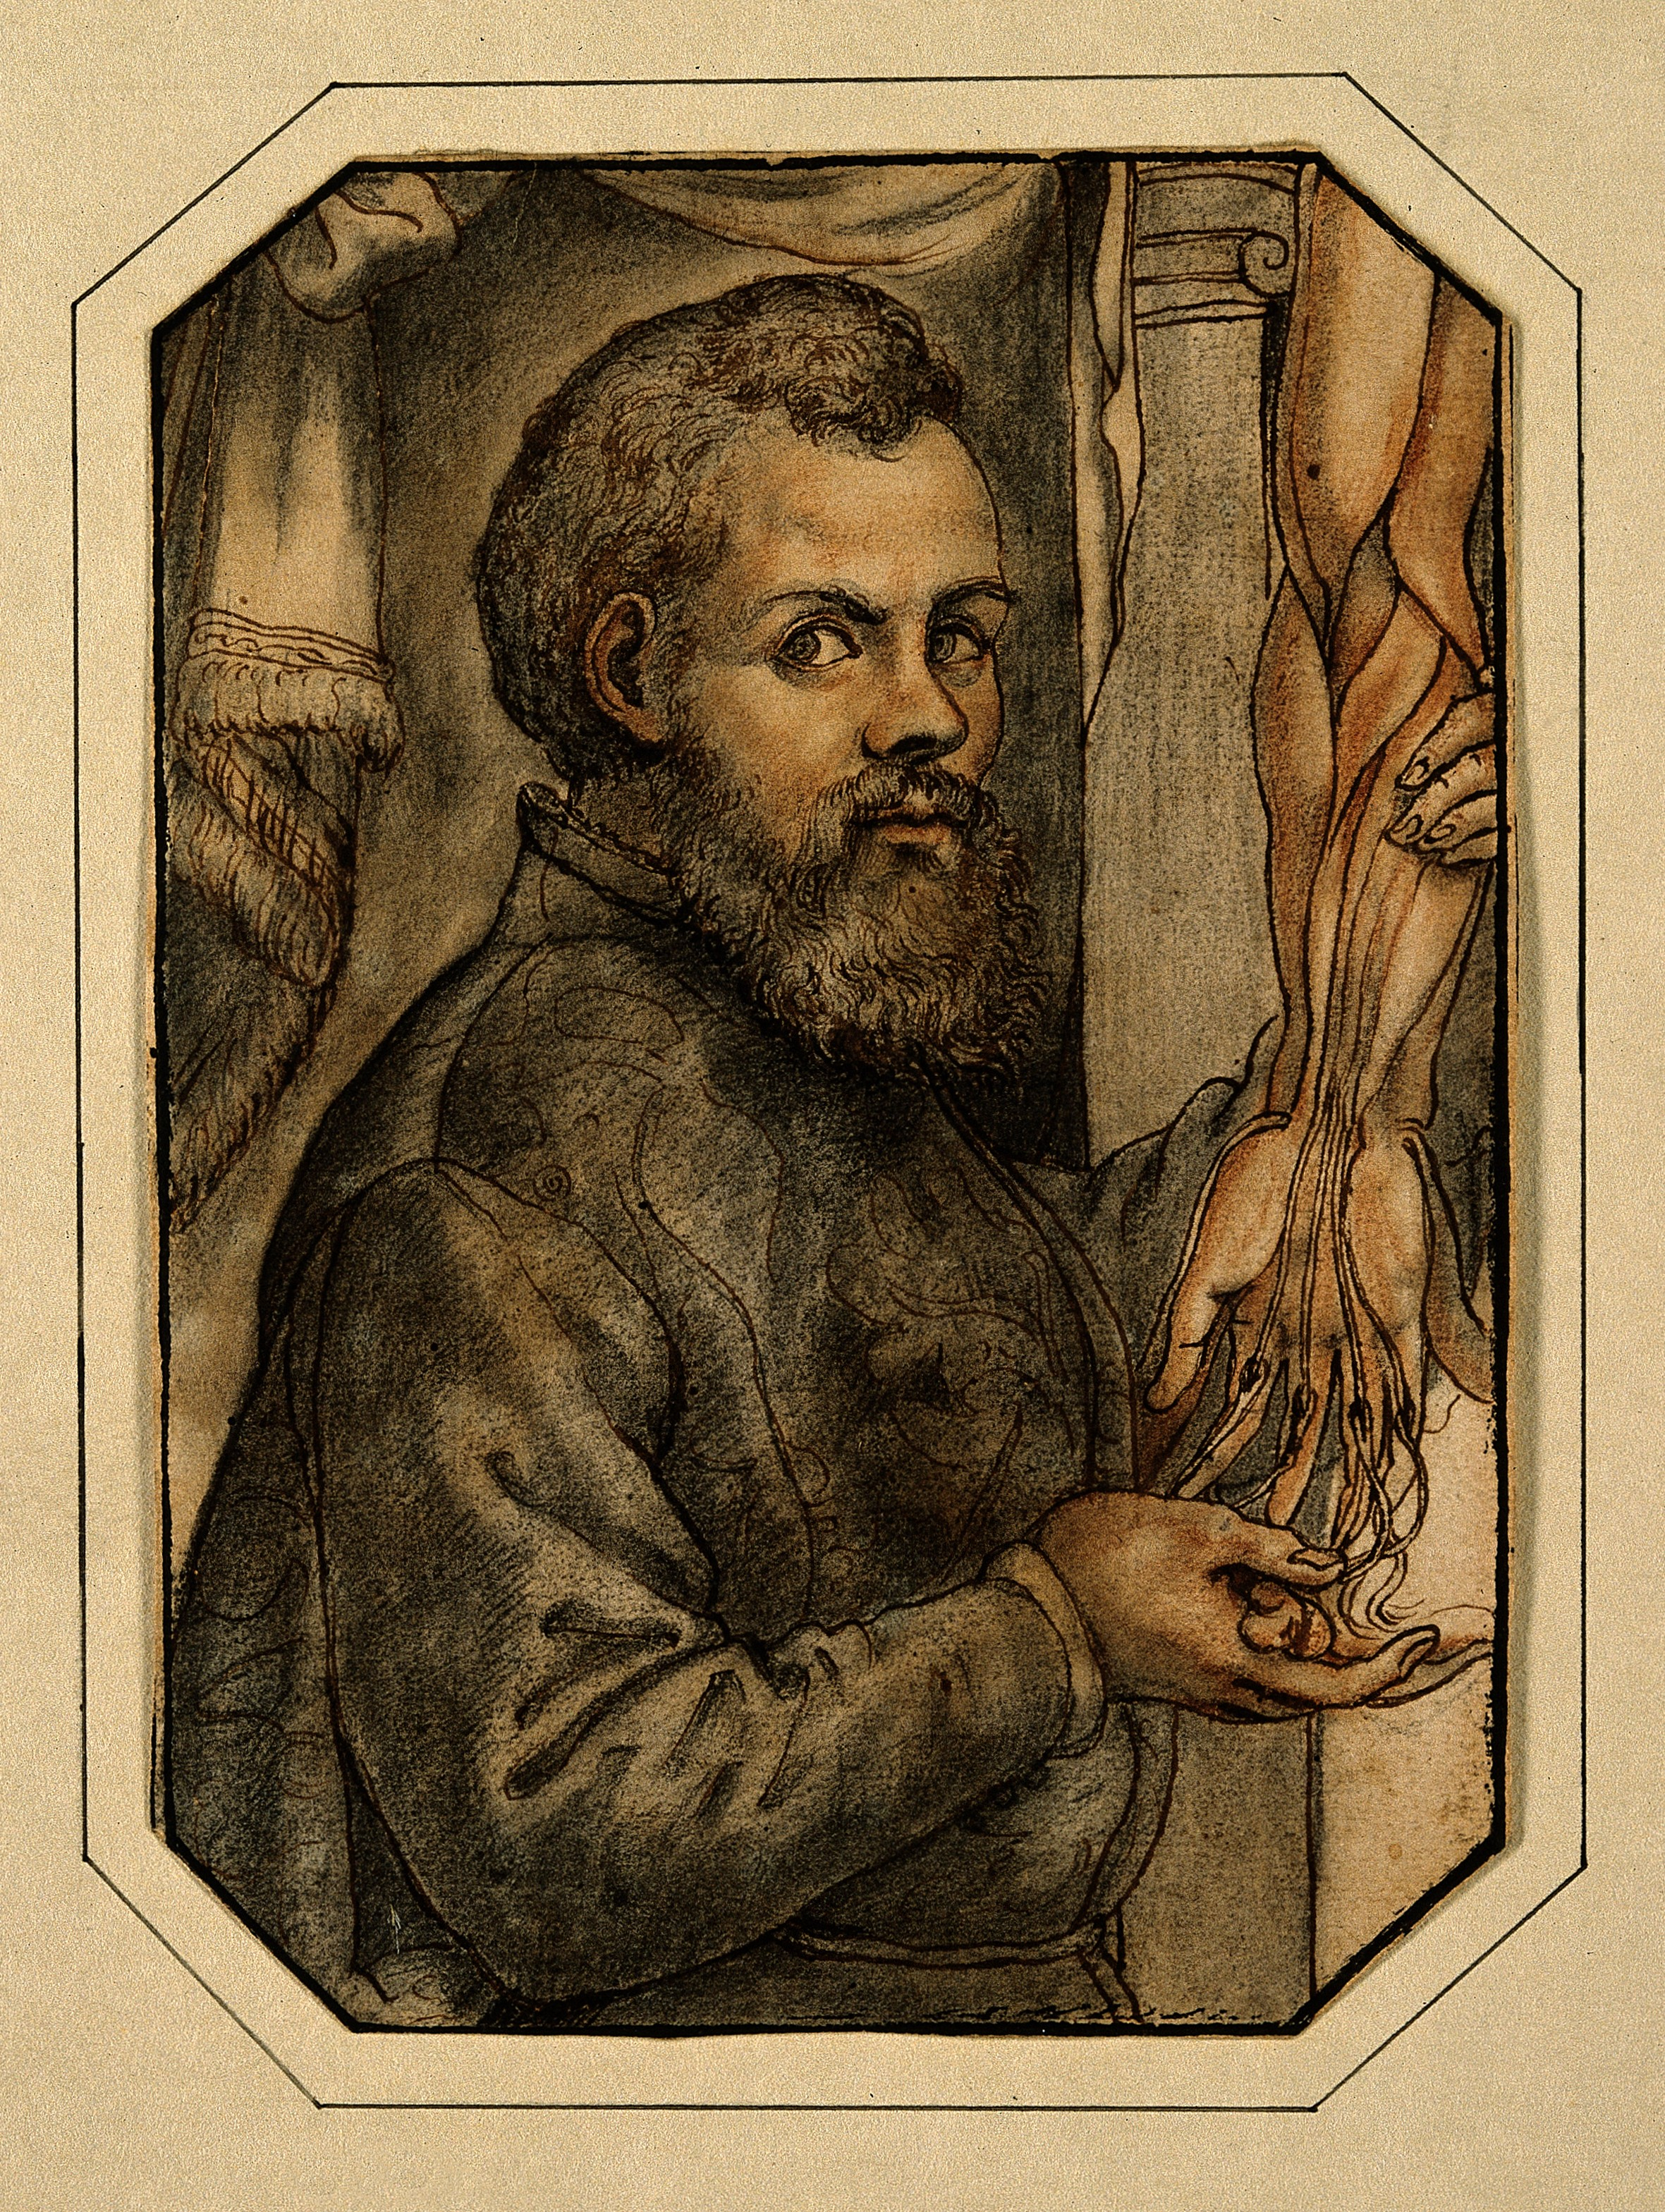 V0006032 Portrait of Andreas Vesalius (1514 - 1564), Flemish anatomist Credit: Wellcome Library, London. Wellcome Images images@wellcome.ac.uk http://wellcomeimages.org Portrait of Andreas Vesalius (1514 - 1564), Flemish anatomist Watercolour Published: - Copyrighted work available under Creative Commons Attribution only licence CC BY 4.0 http://creativecommons.org/licenses/by/4.0/